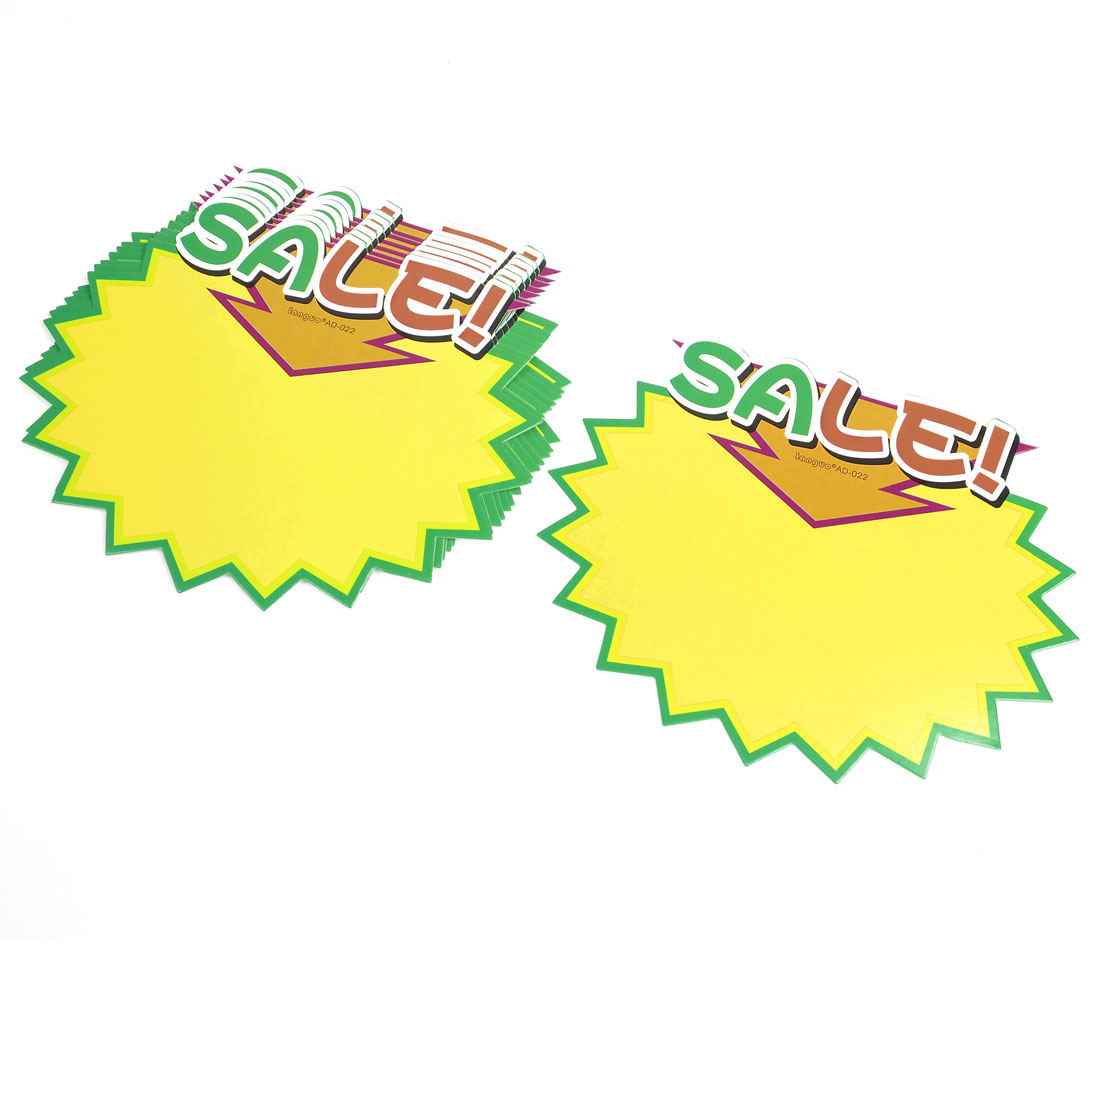 10pcs Shop Store Sale Promotional Price Tags Signs POP Paper Yellow Green